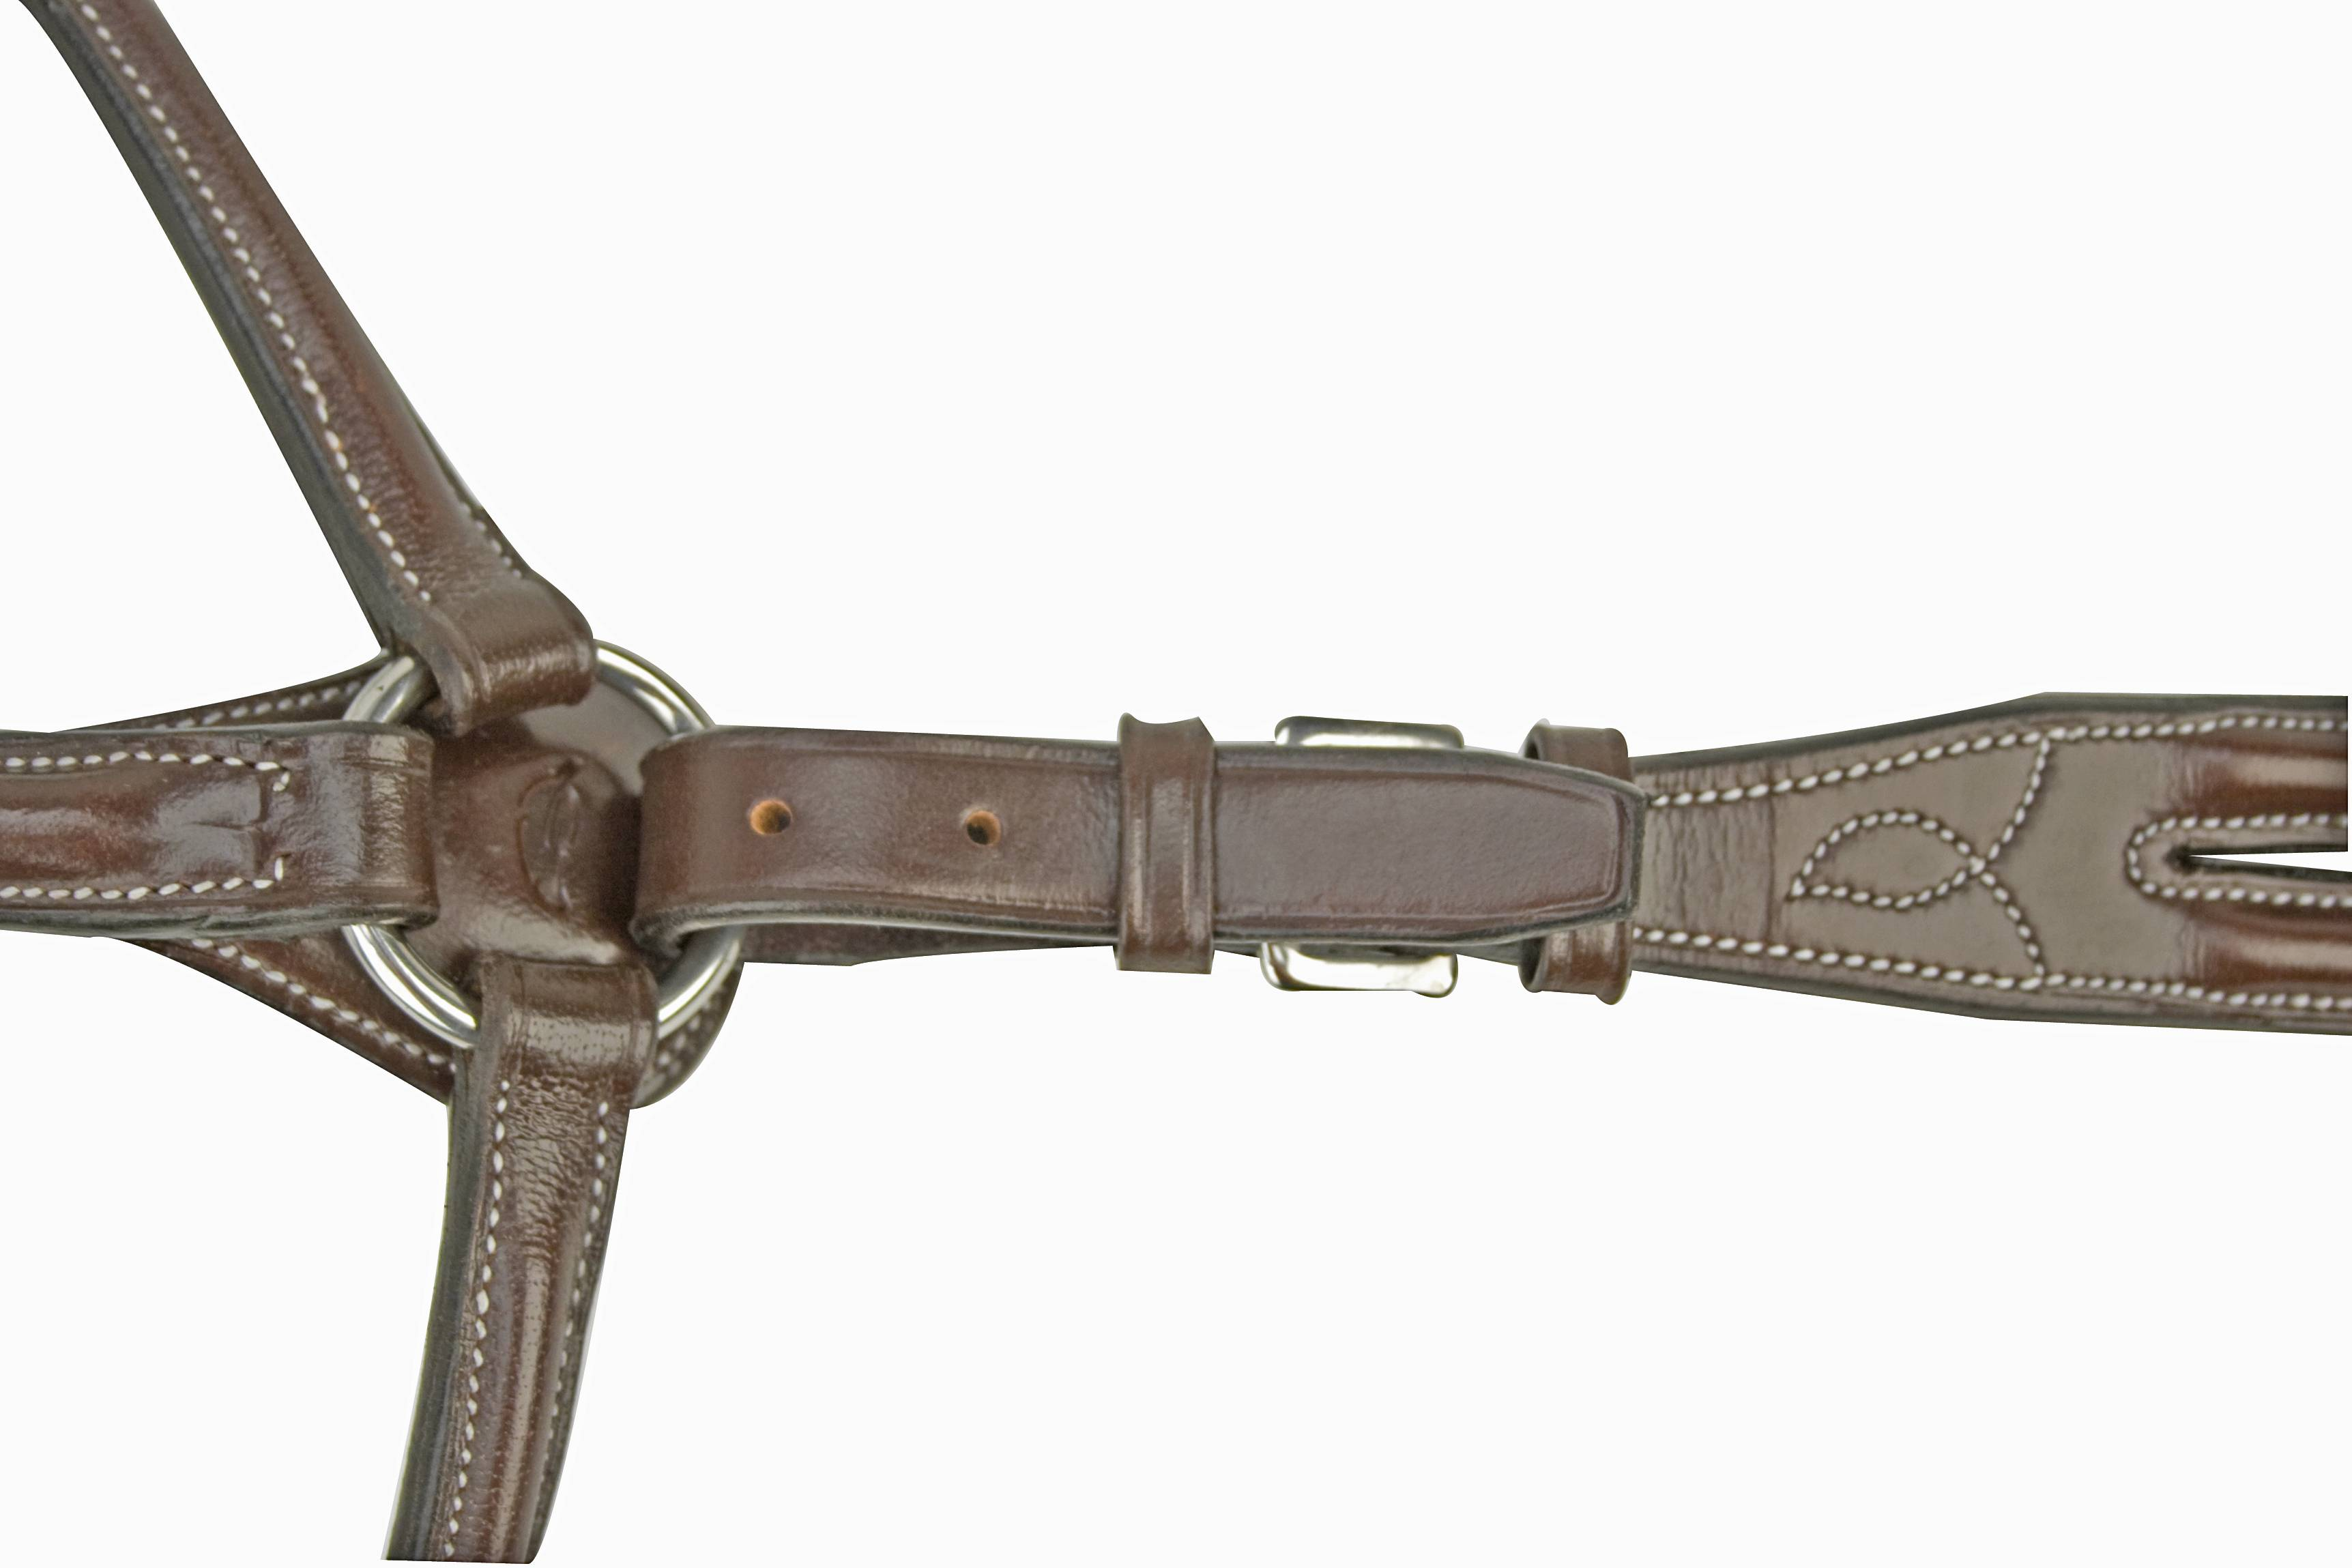 Silverleaf Square Raised Breastplate with Standing Attachment